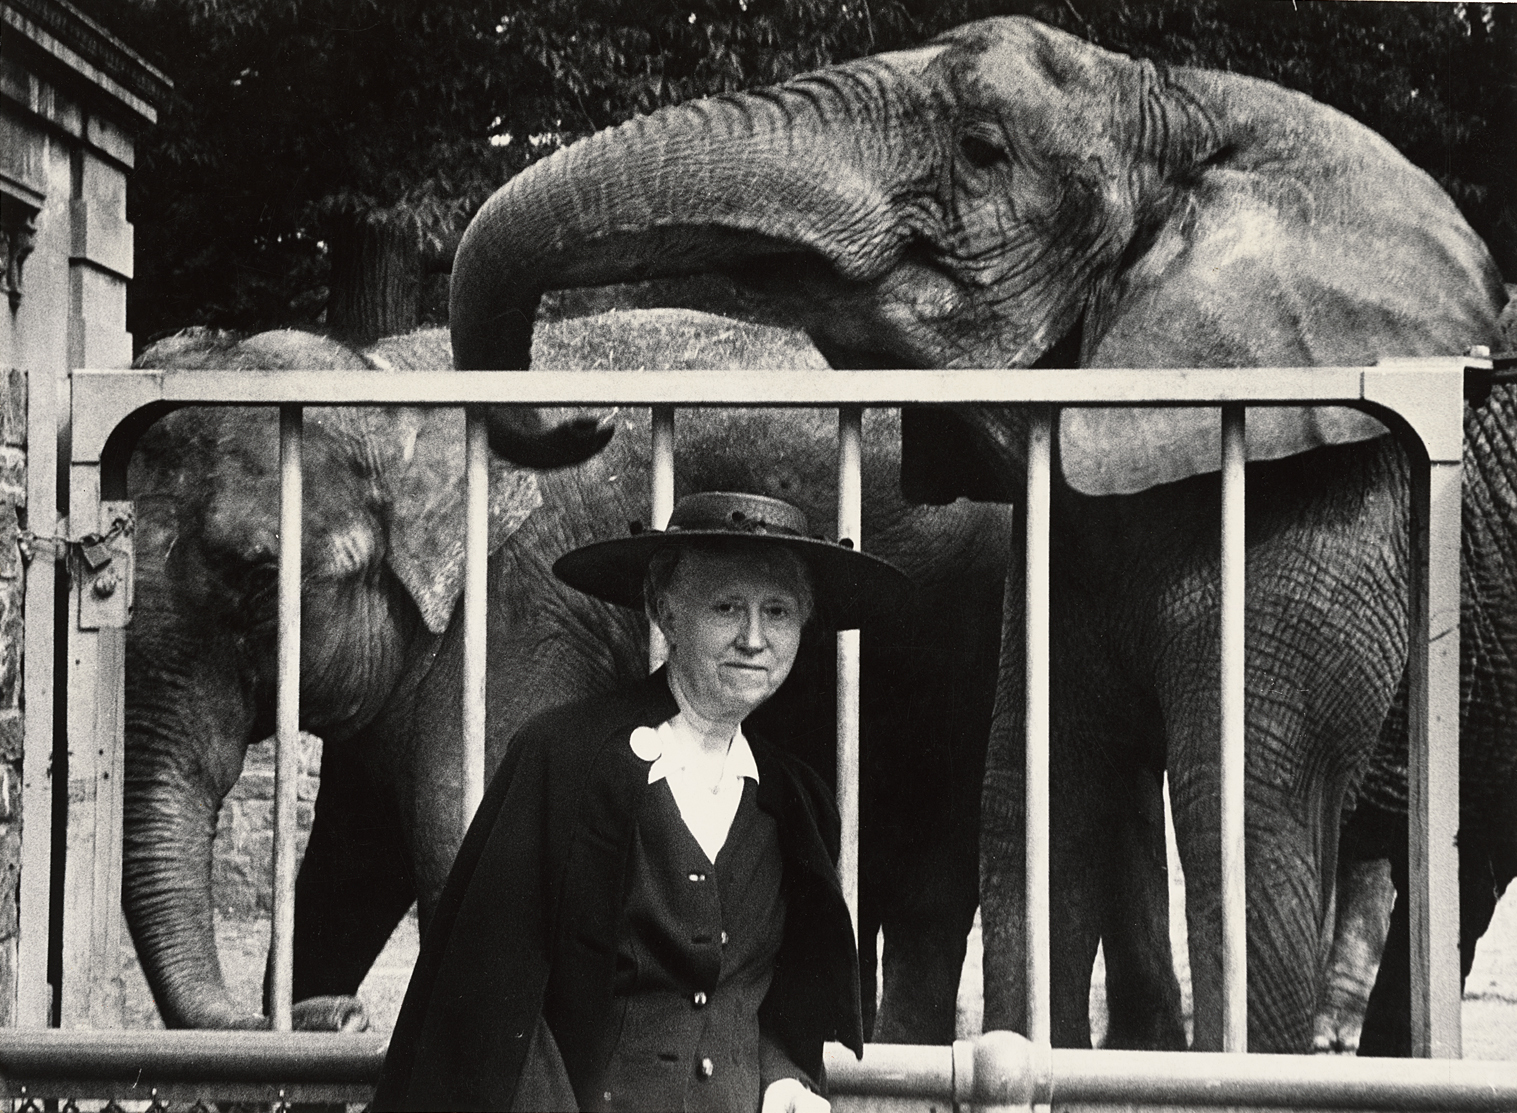 marianne moore on bird witted essay Marianne moore (1887-1972) | on moore's life and career | a moore  chronology | on poetry | on the fish | on sojourn in the whale | on a  grave | on.